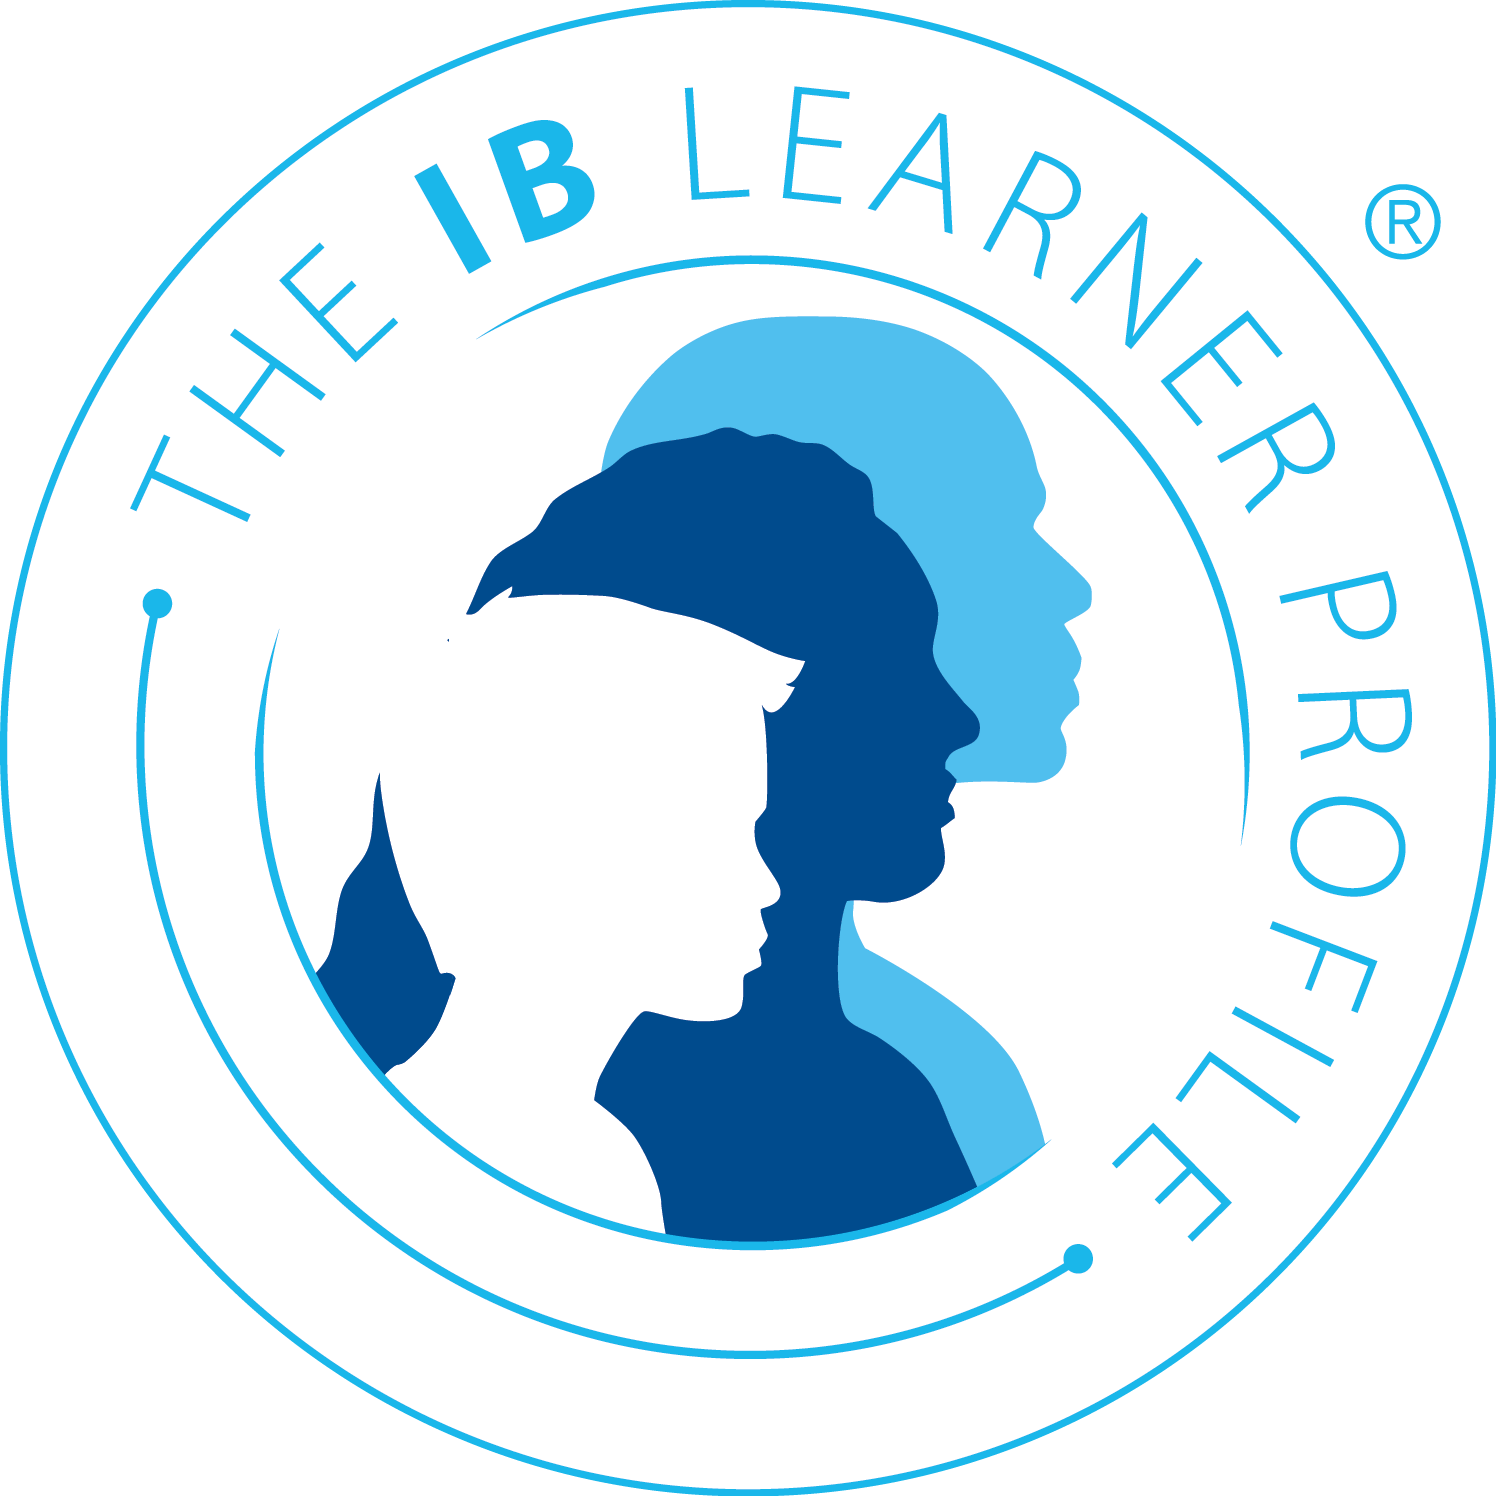 Notes clipart student profile. The ib mission and